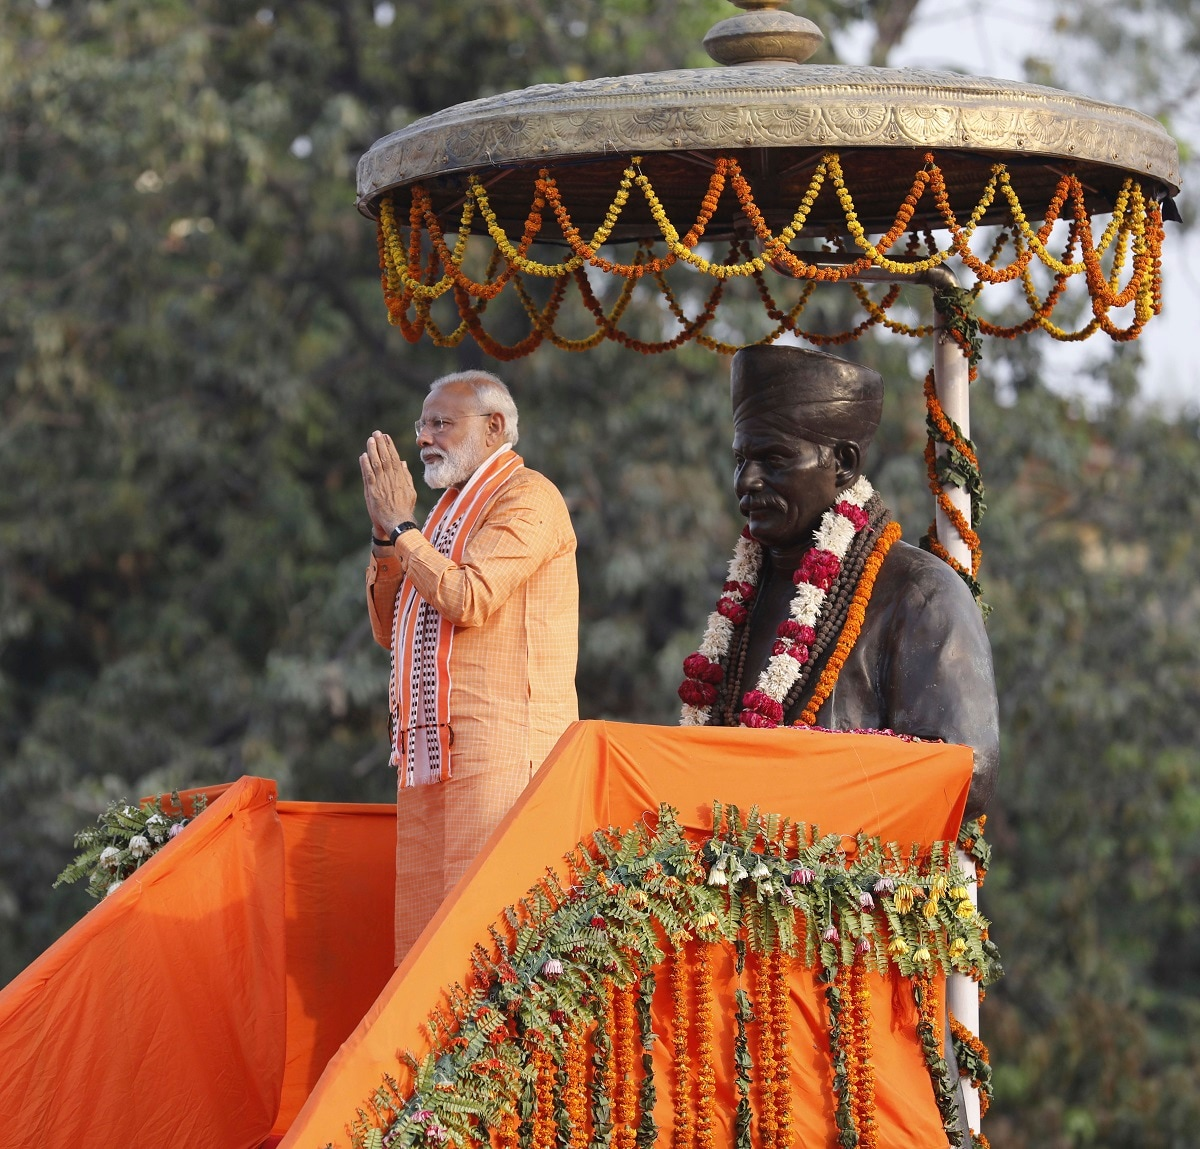 Prime Minister Narendra Modi greets the crowd as he stands in front of a statue of freedom fighter Madan Mohan Malviya at Banaras Hindu University in Varanasi. (AP Photo/Rajesh Kumar Singh)